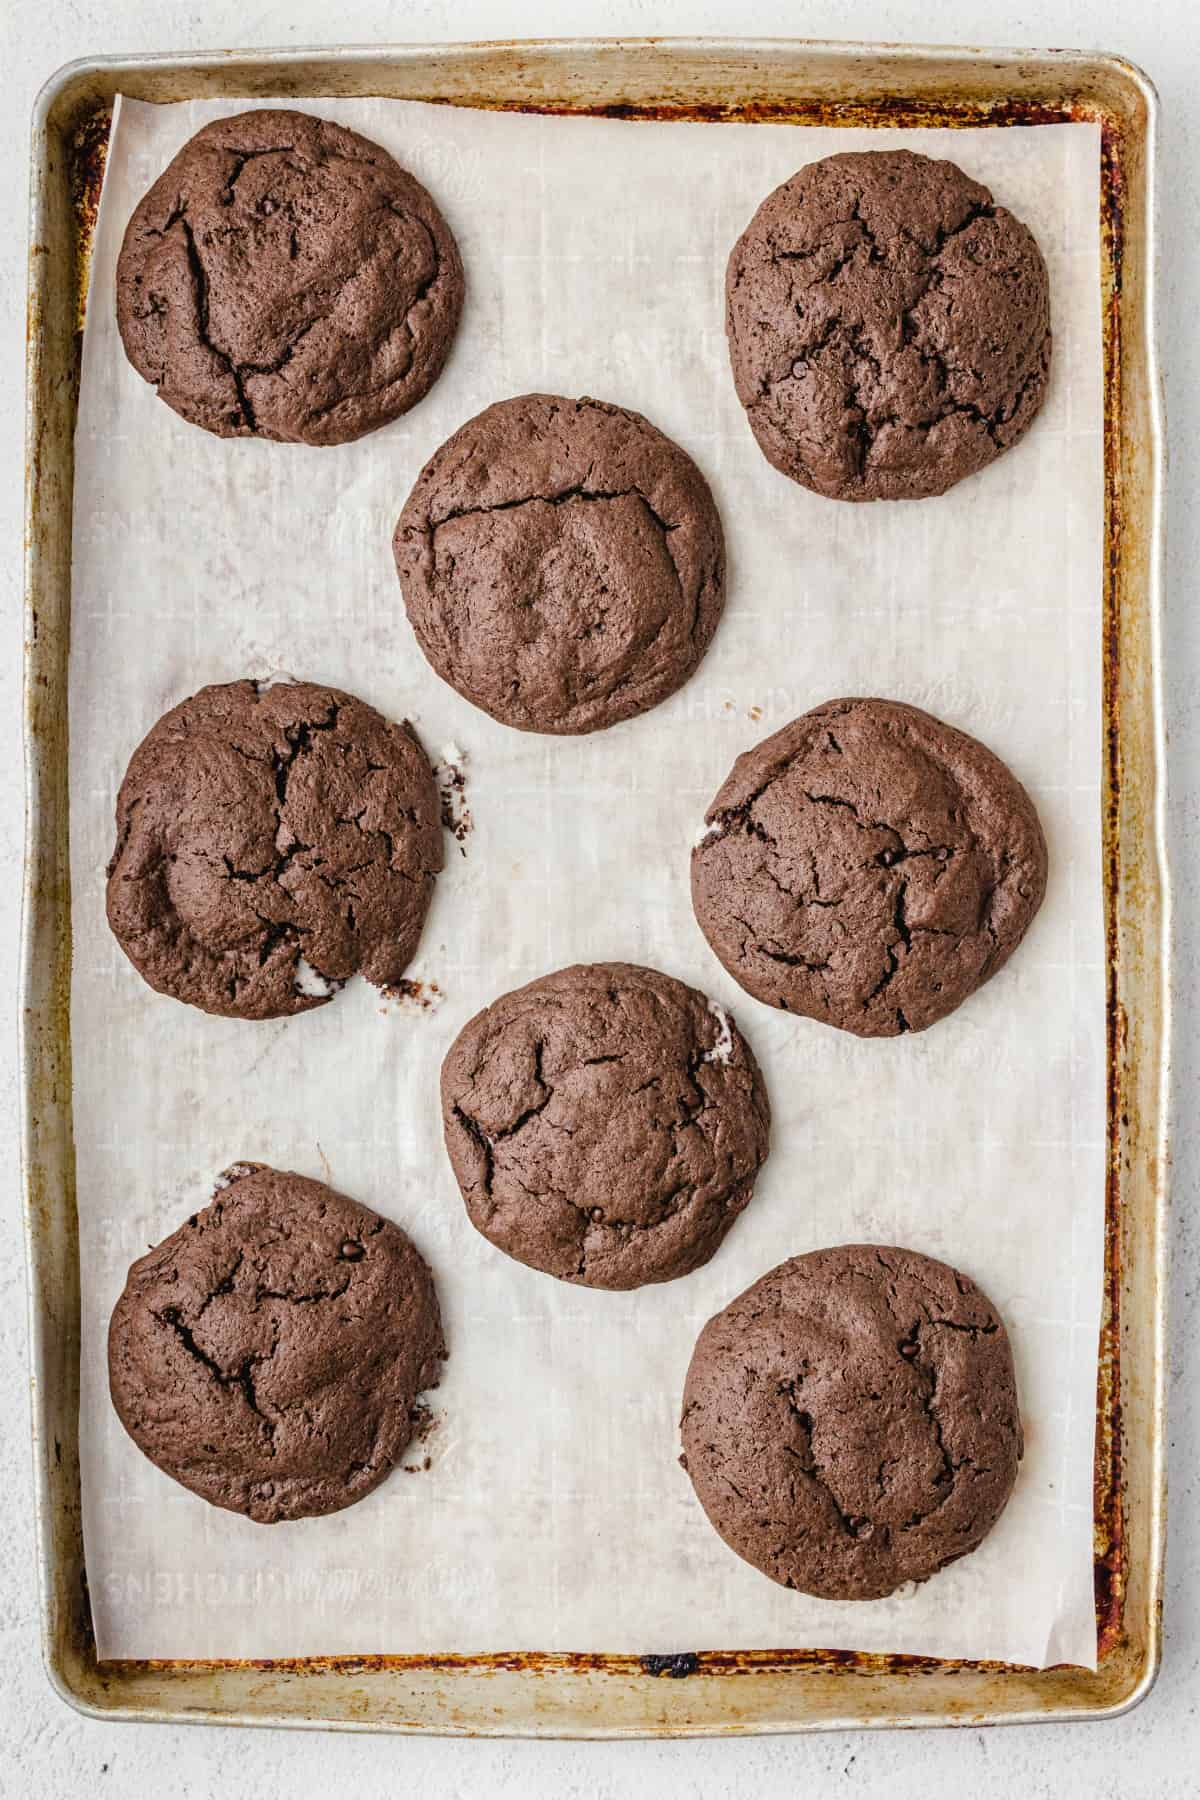 Peppermint Patty Cookies baked